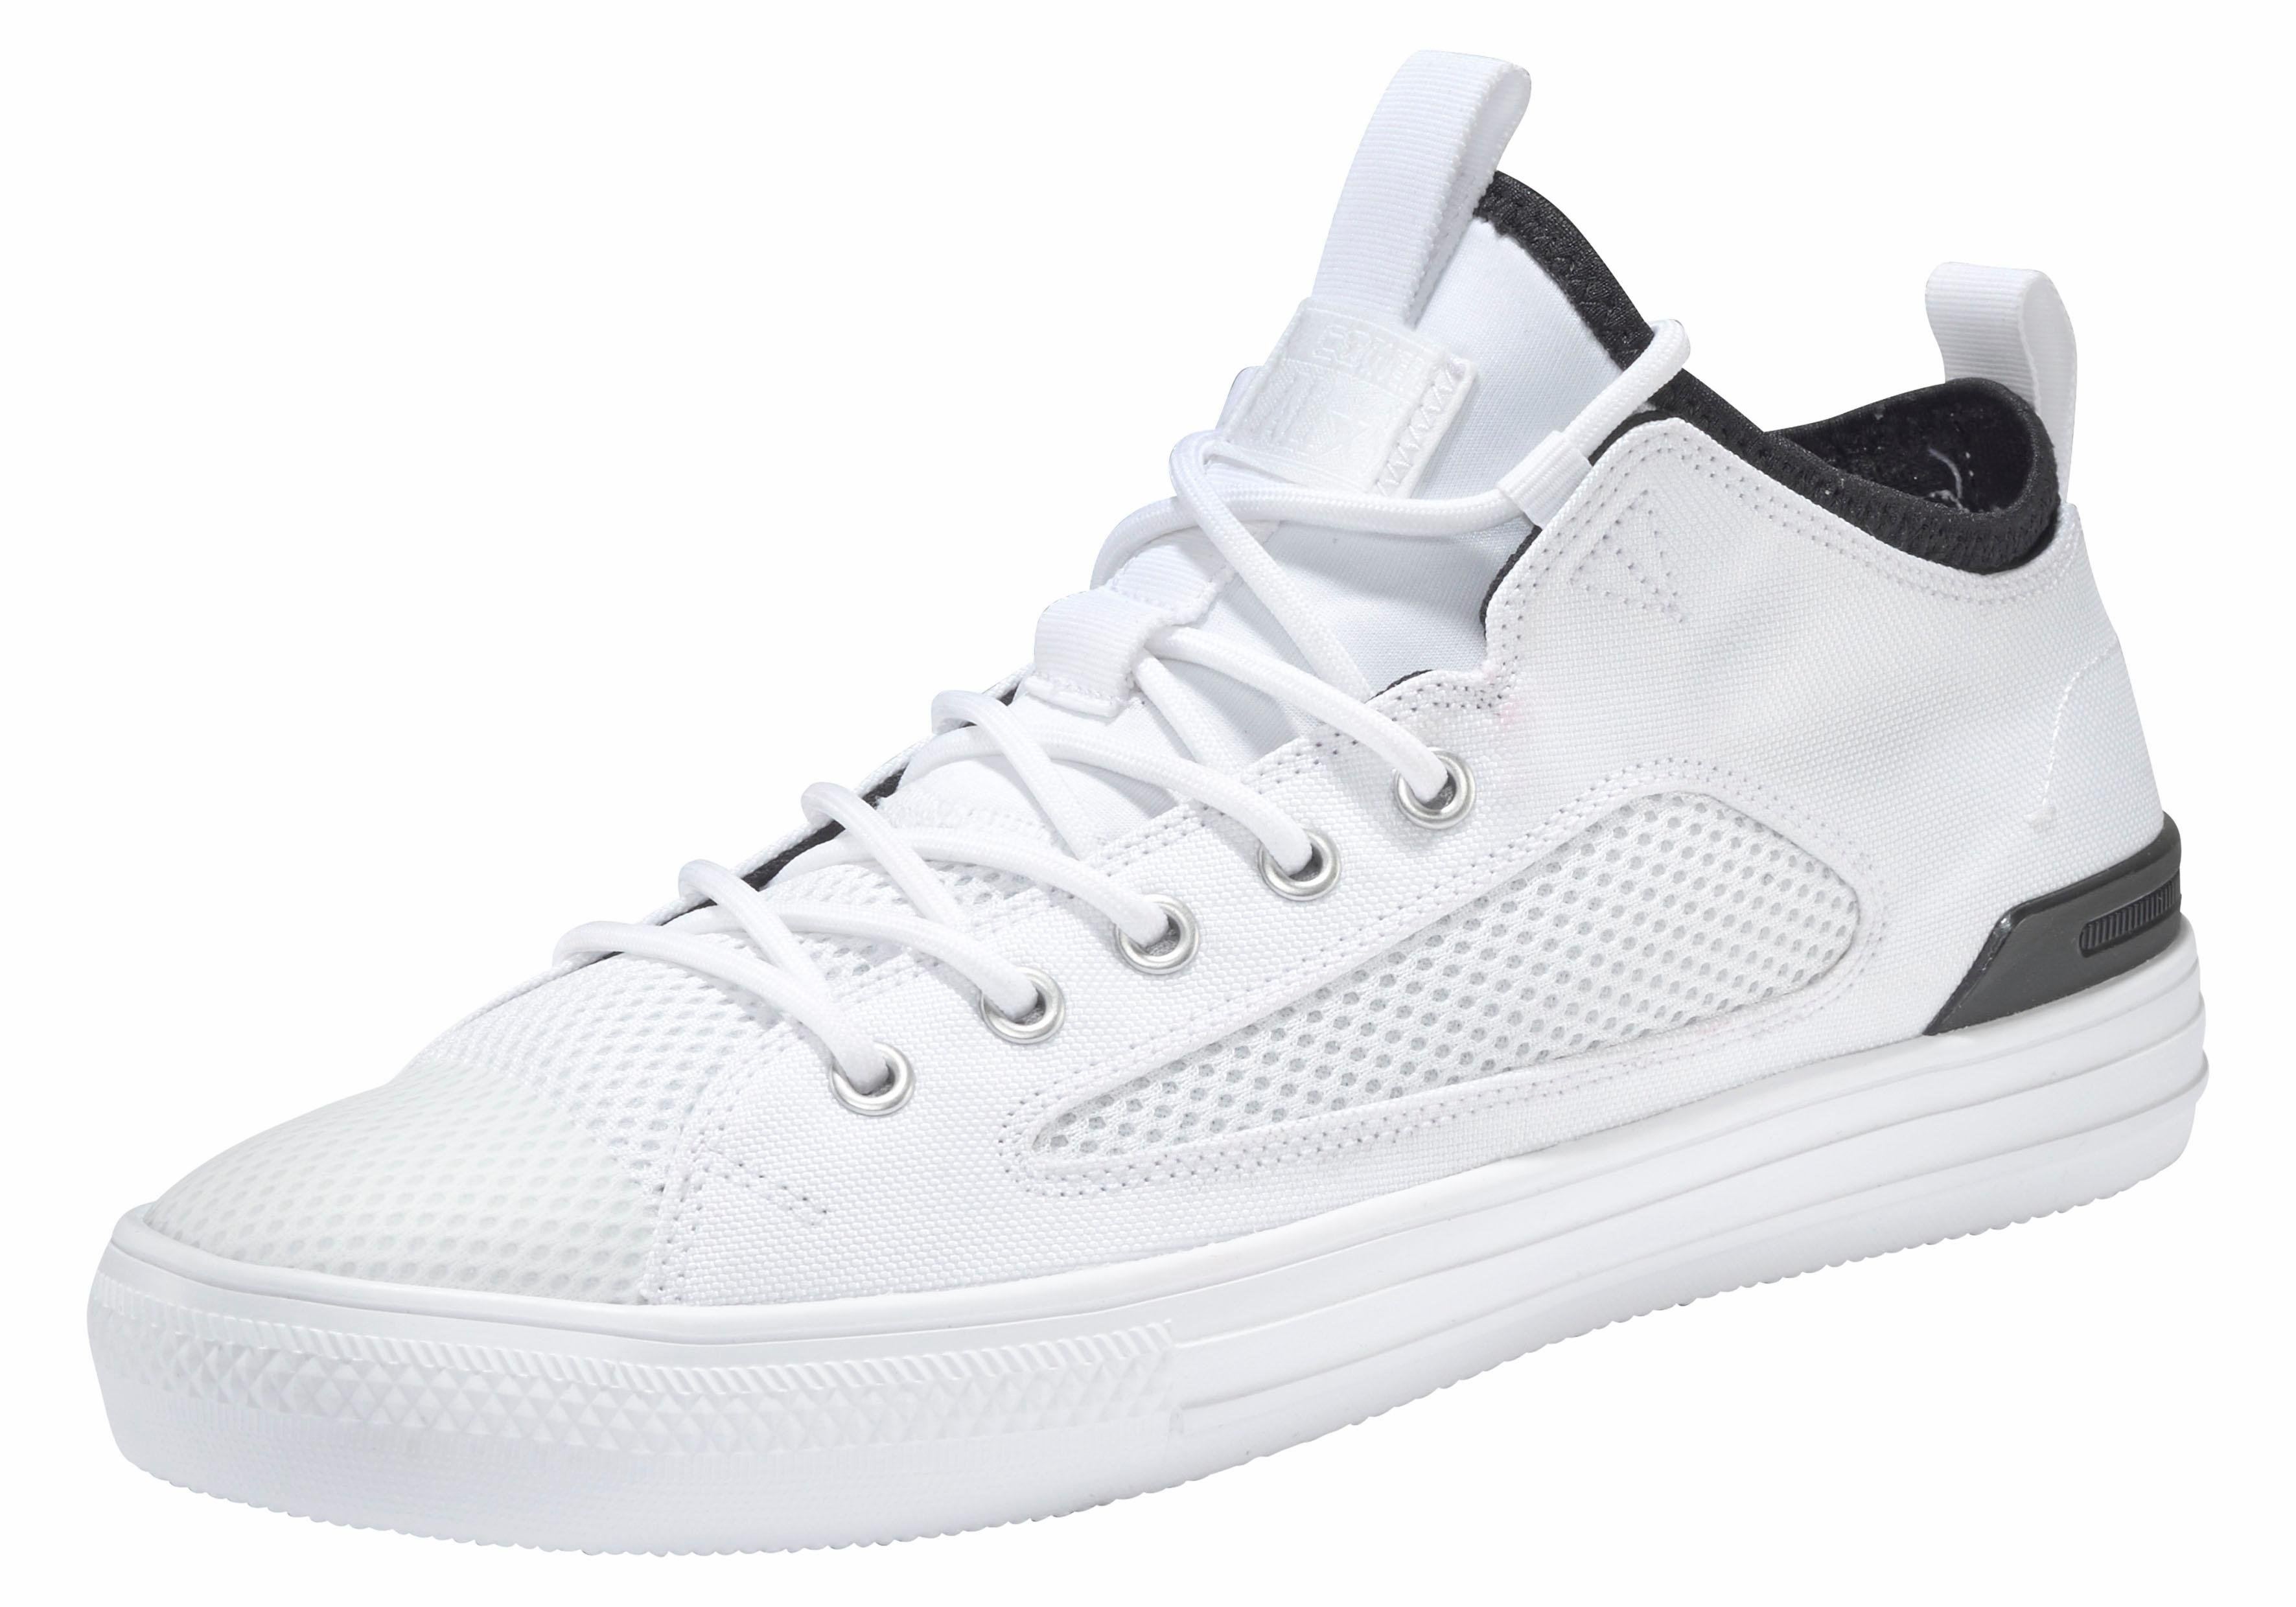 28bd9ad4b55 Afbeeldingsbron: Converse sneakers »Chuck Taylor All Star Ultra Ox«